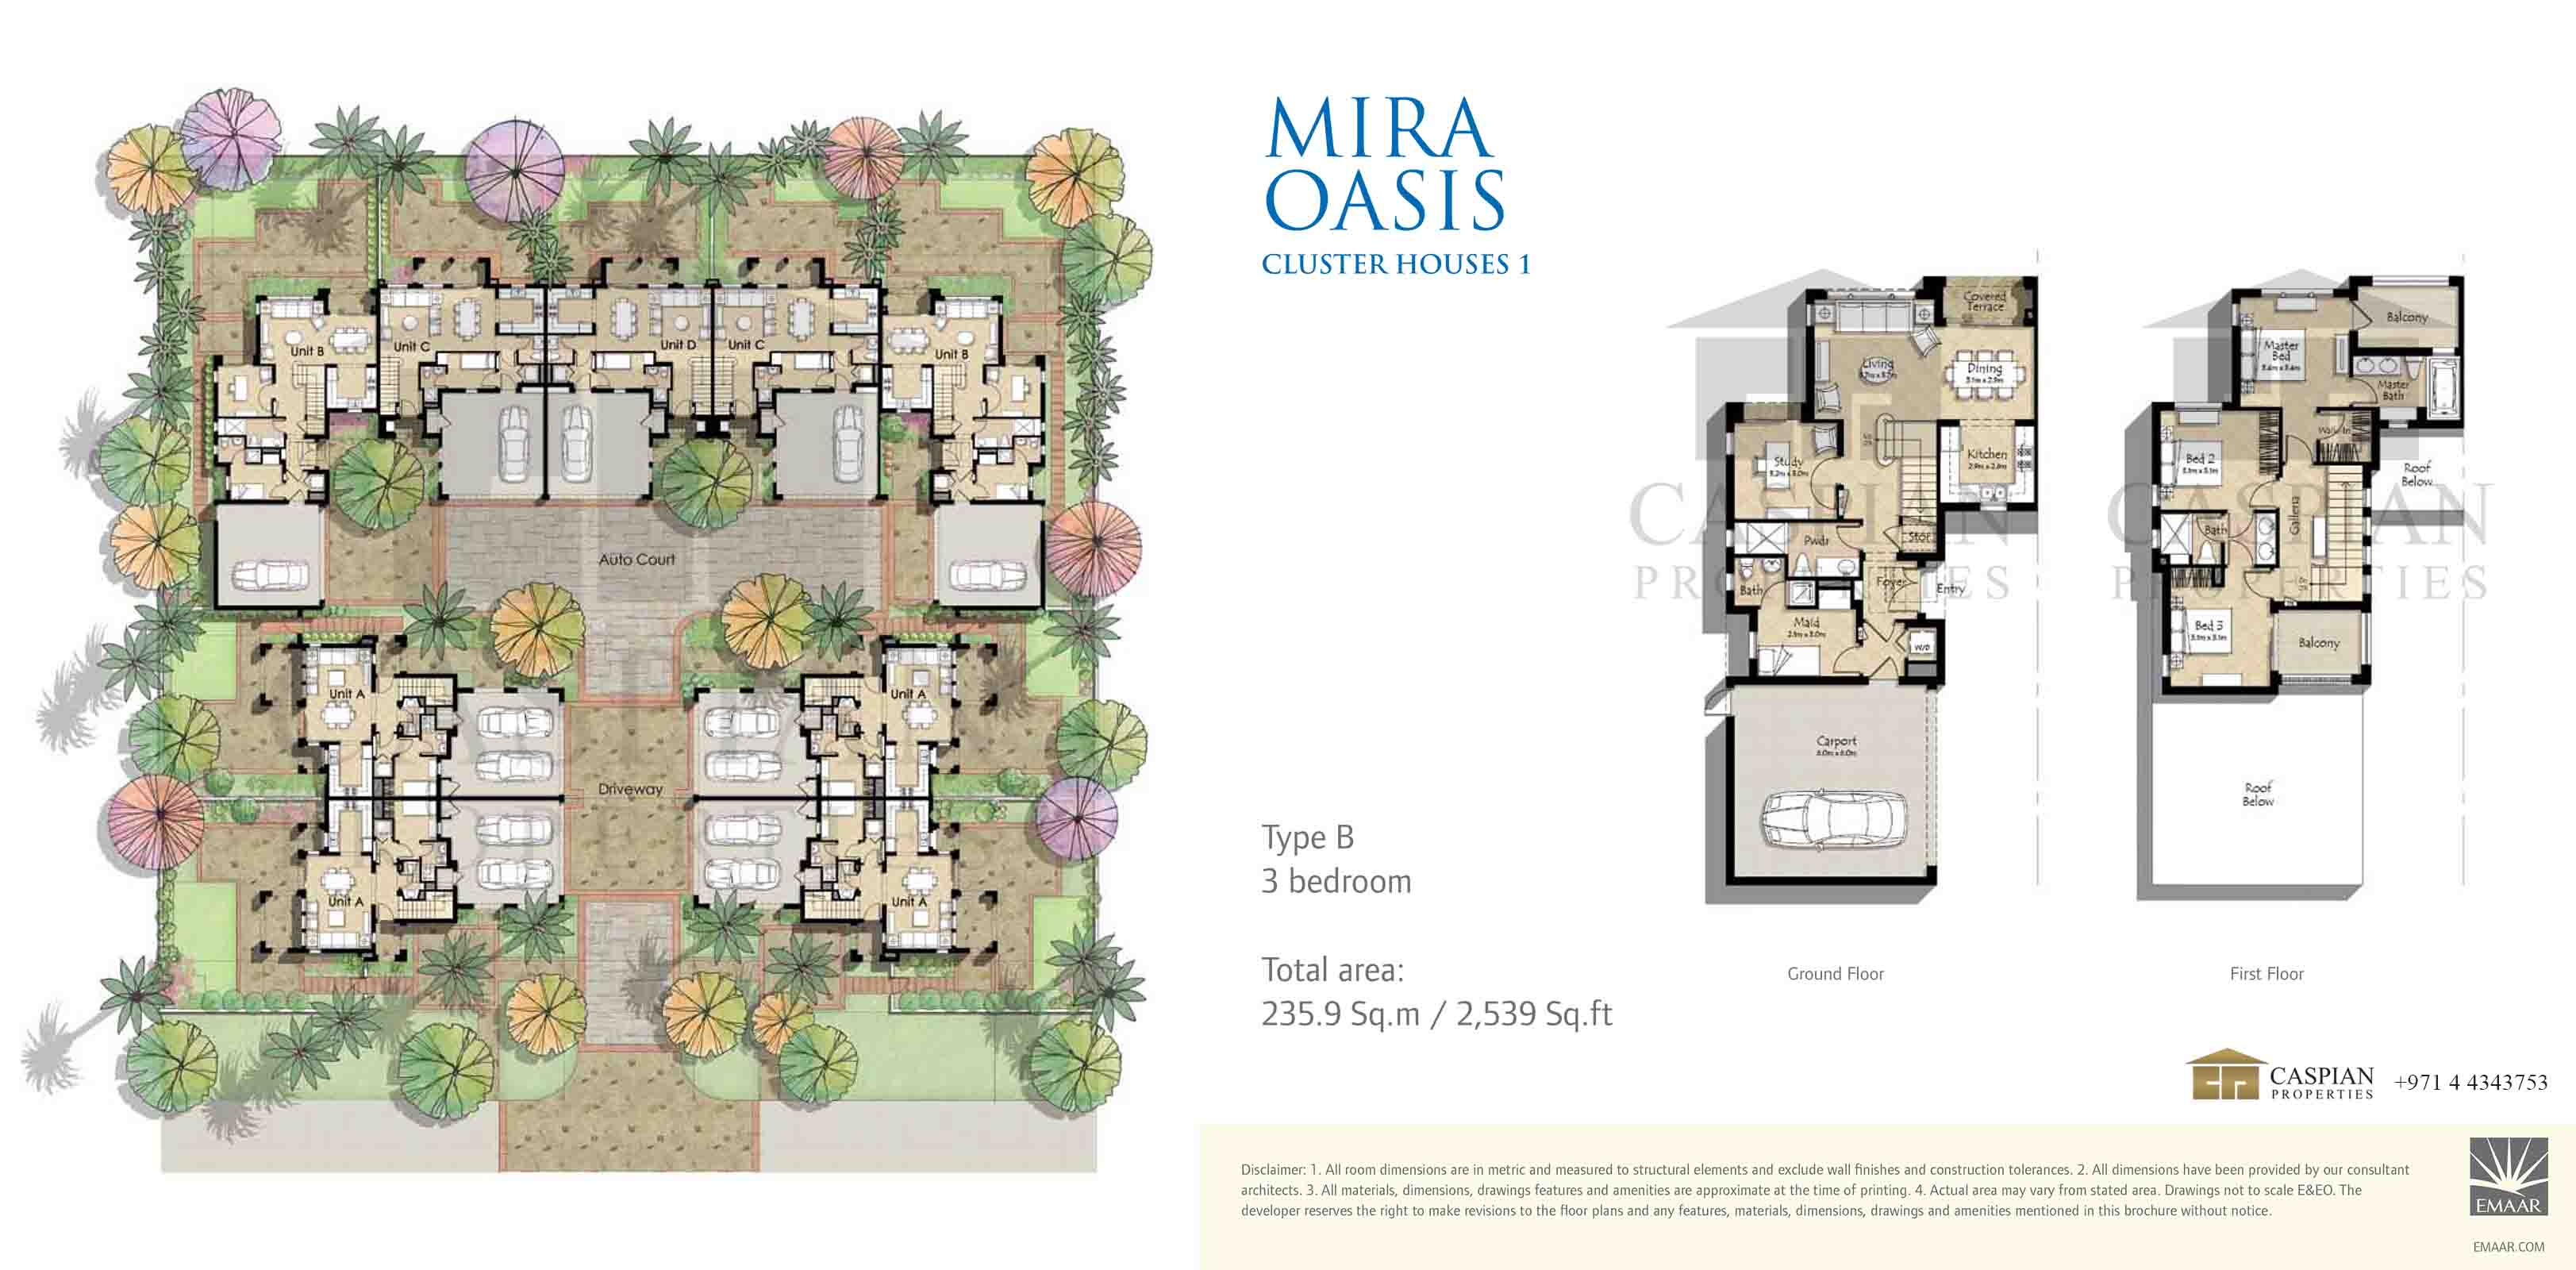 Reem mira oasis ii floor plans for Cluster house floor plan